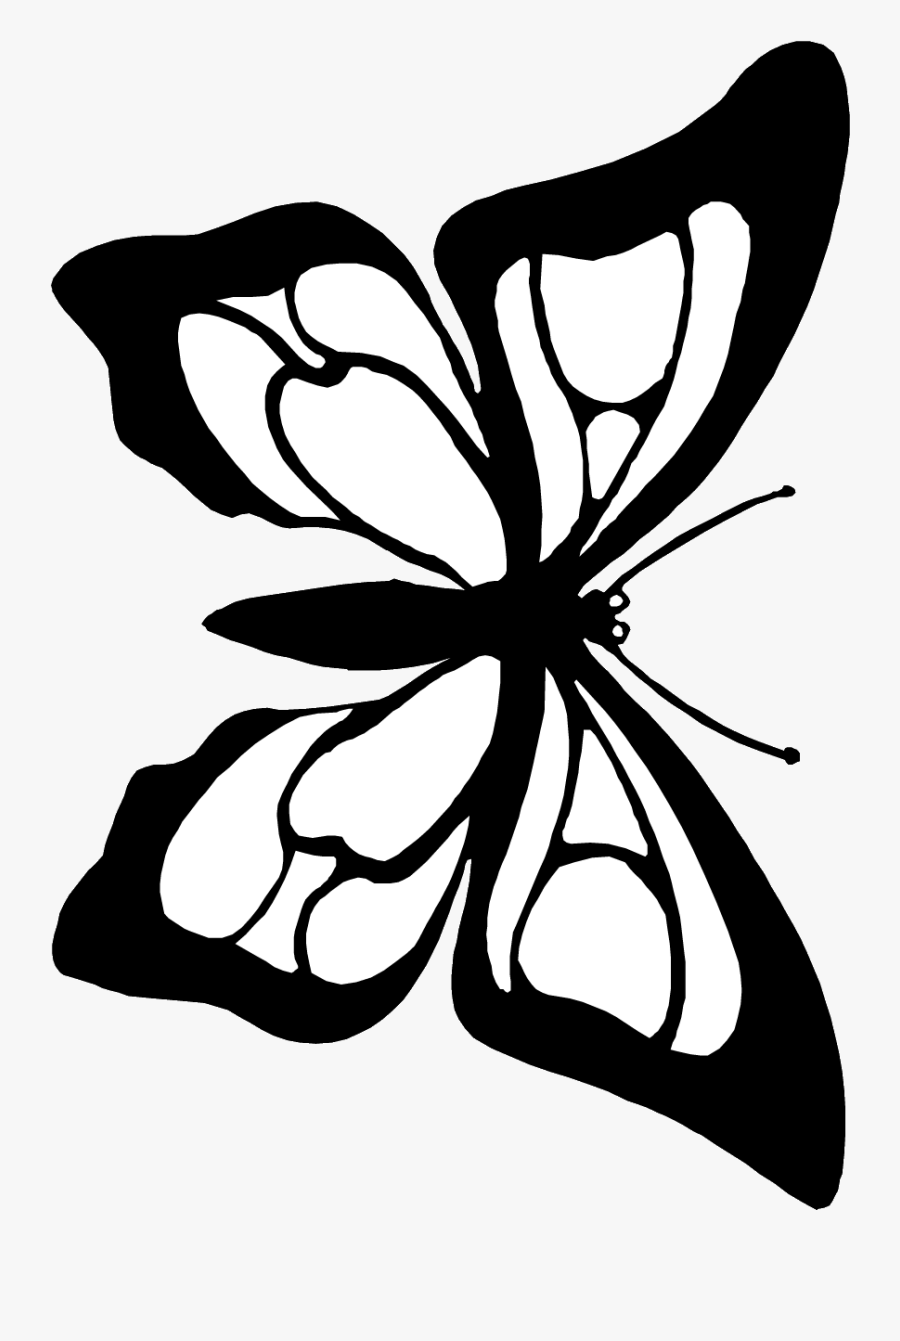 Butterfly Cutout Coloring Page - Butterfly Black White To ...